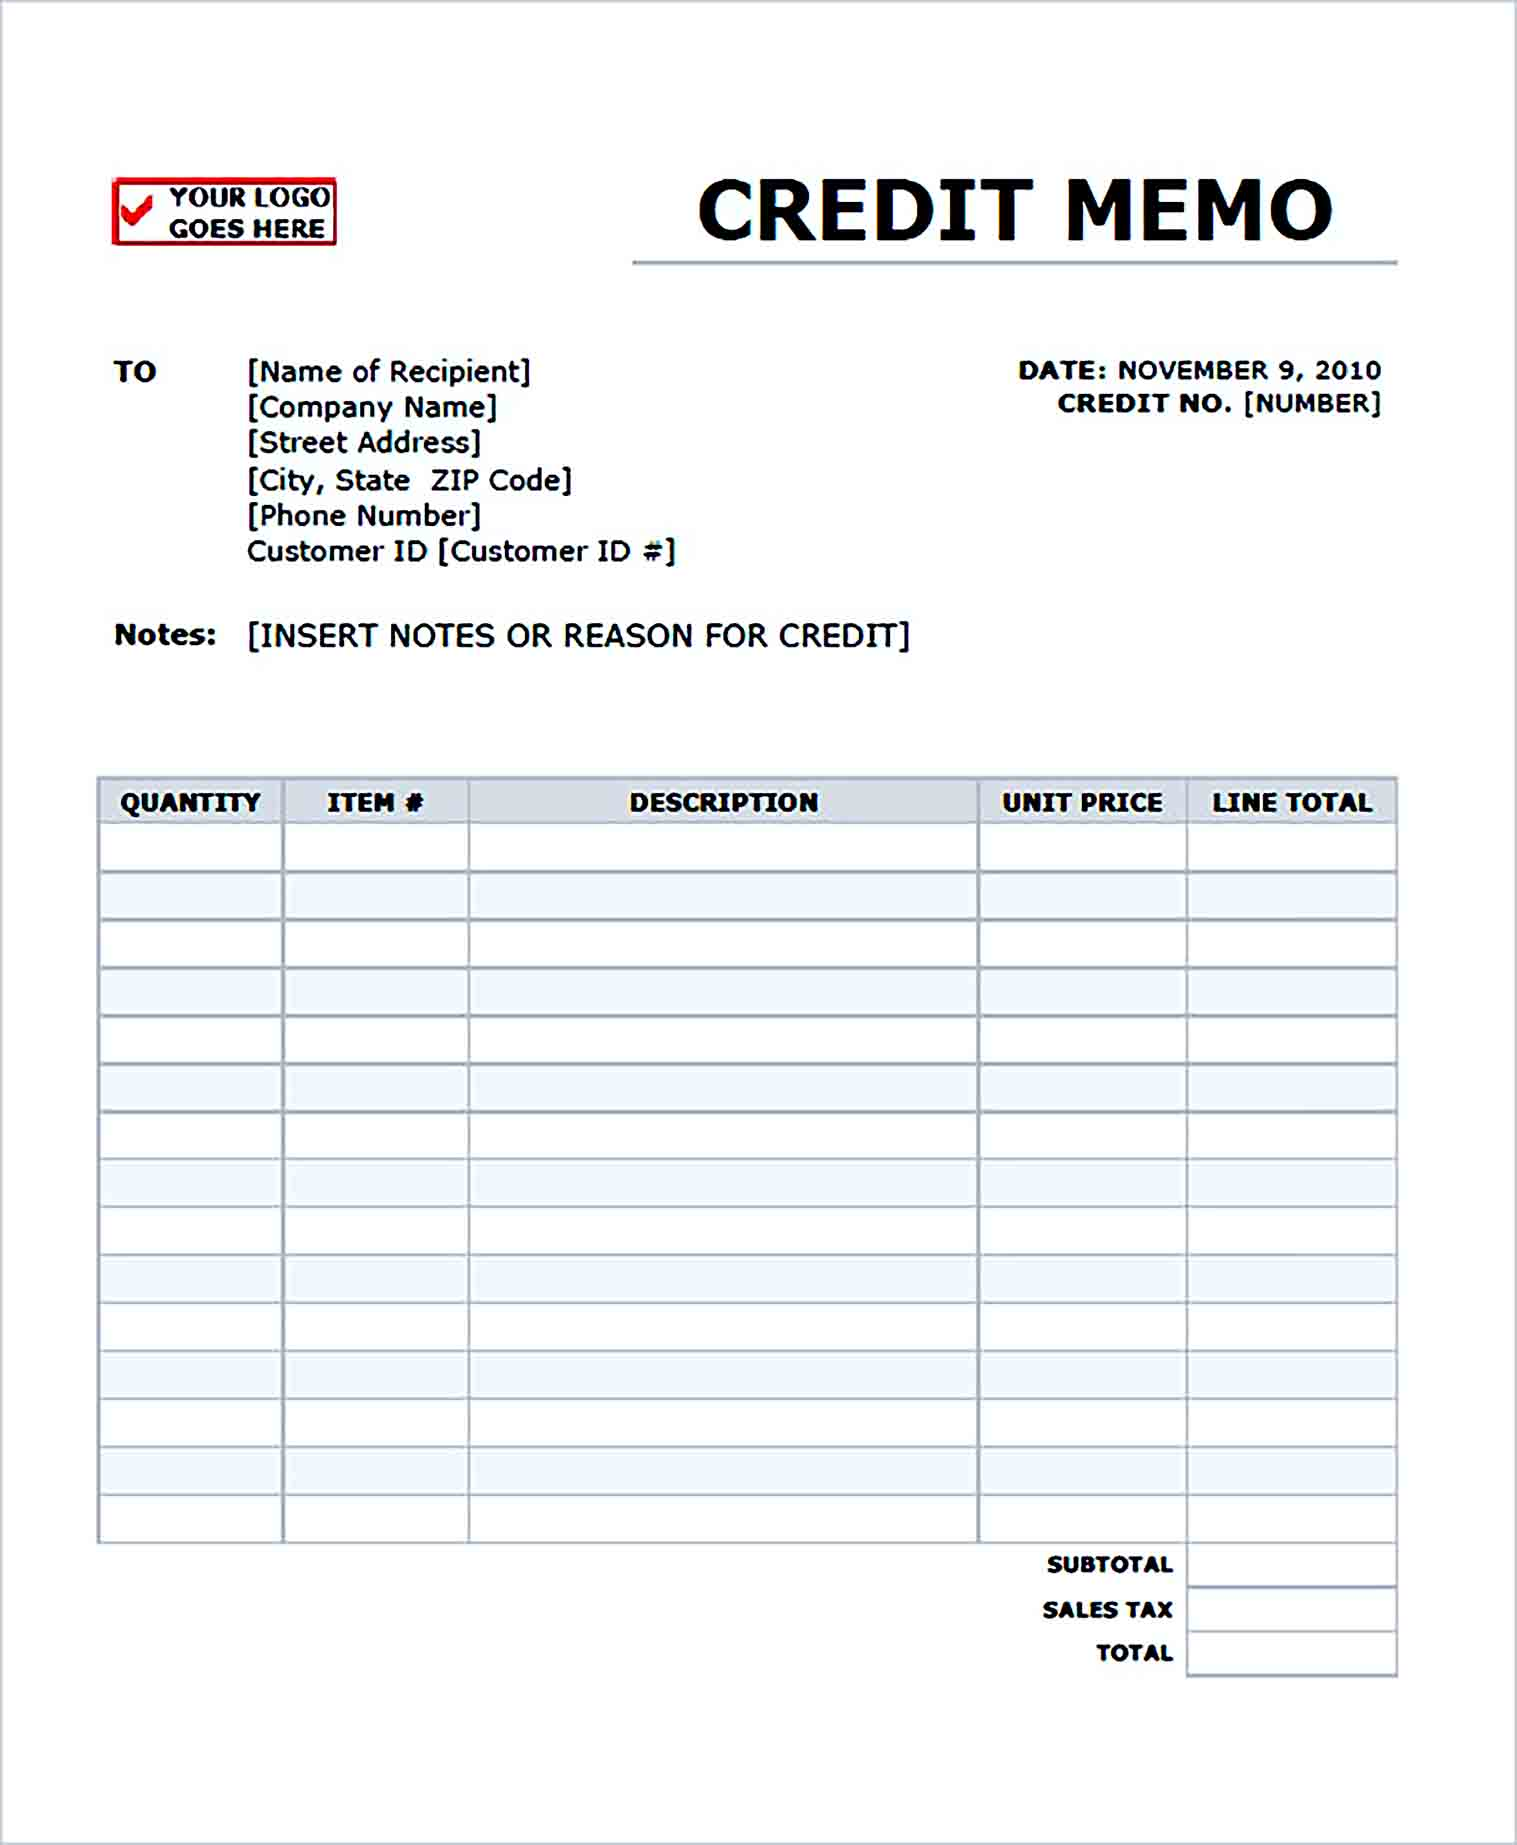 Sample Blank Credit Memo Form